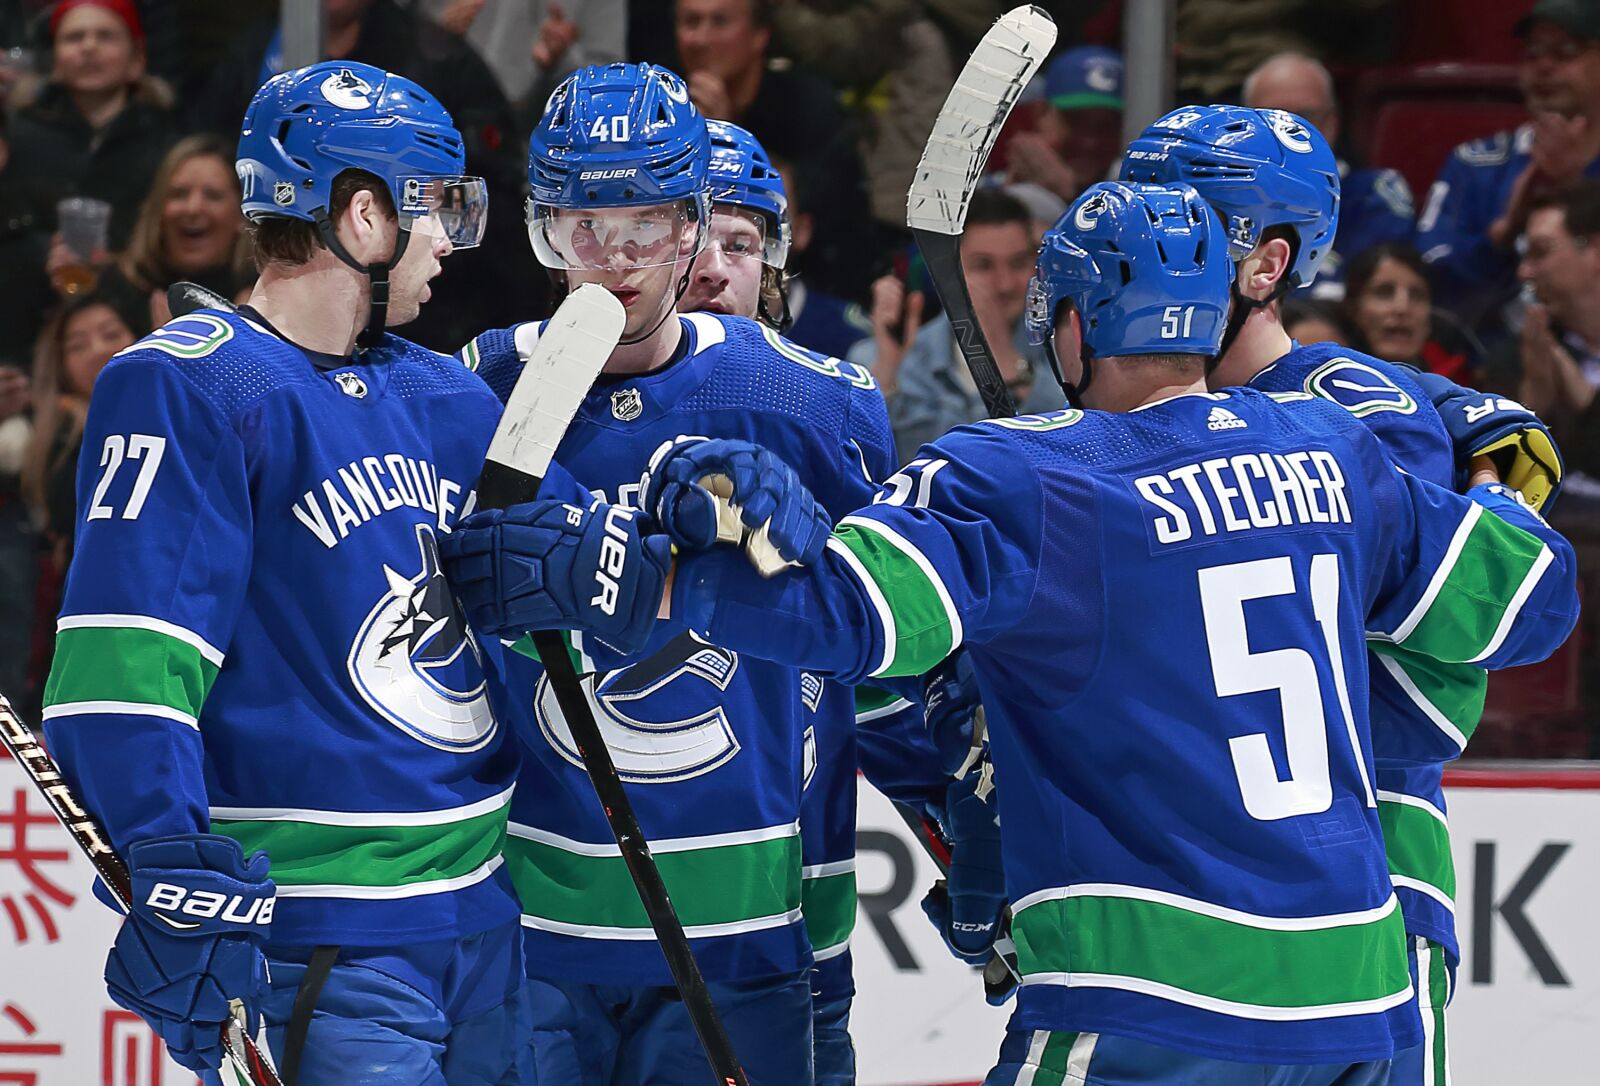 Vancouver Canucks: The Hockey News says their window is just opening